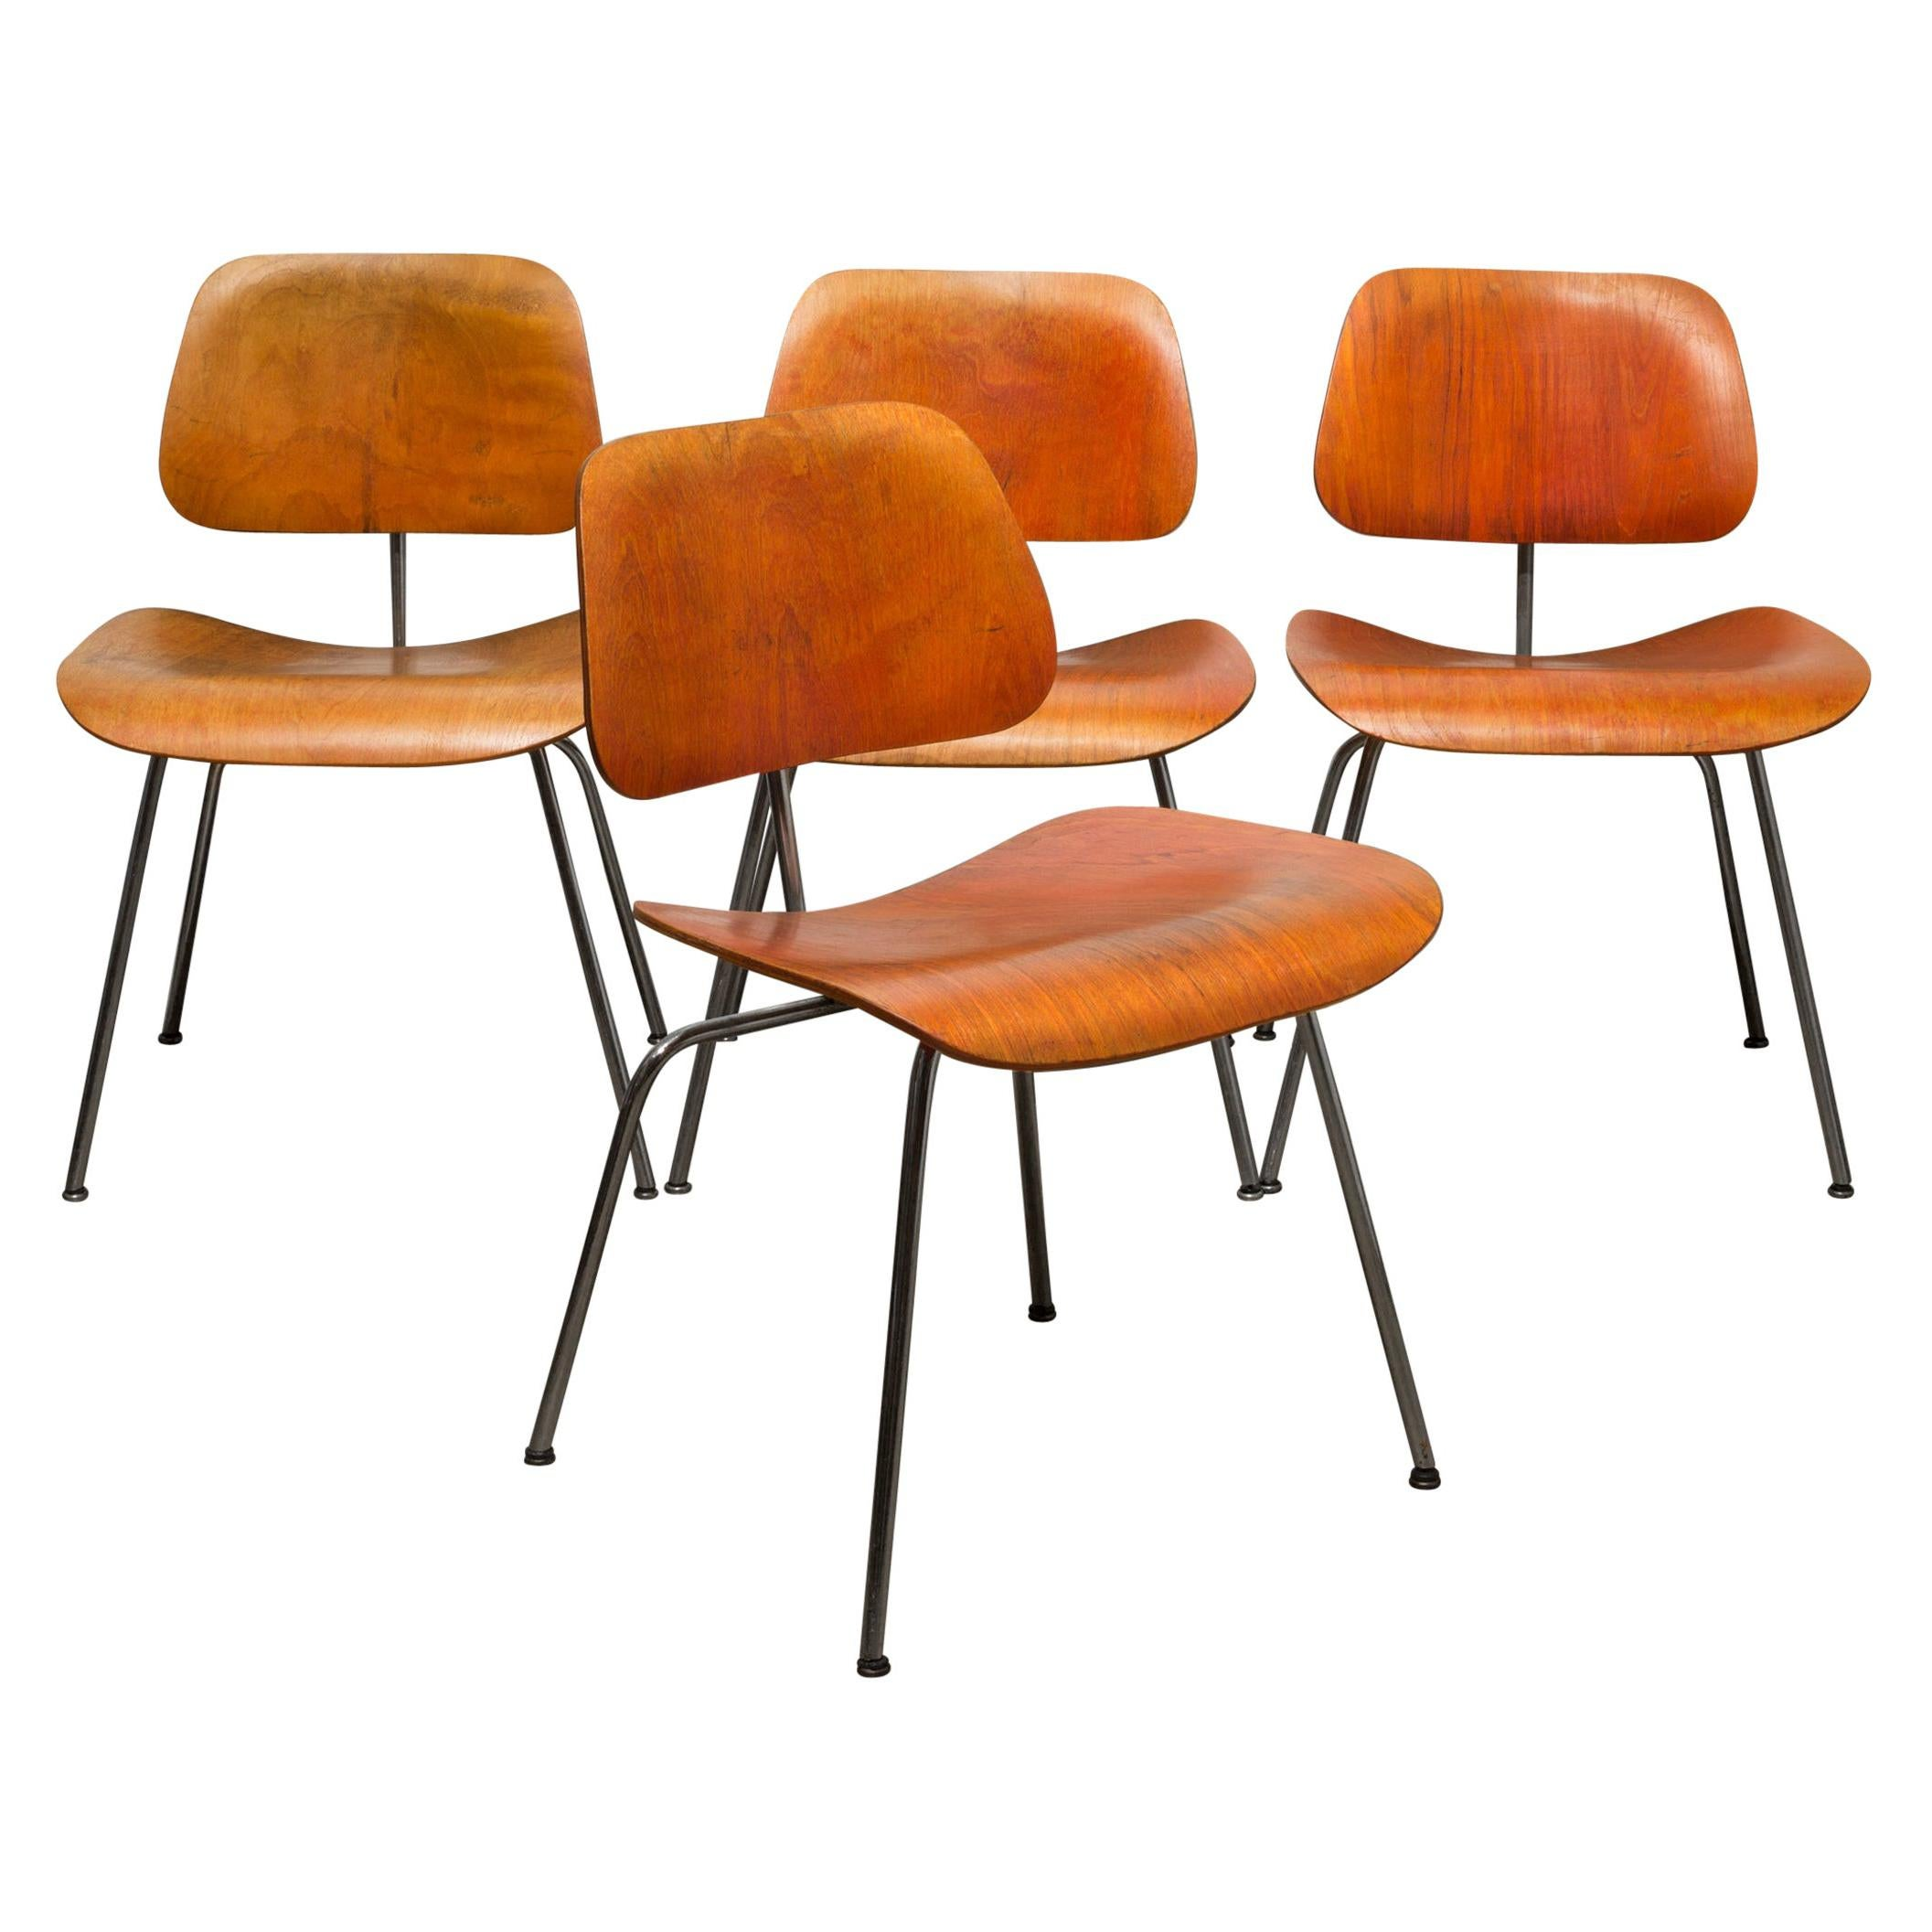 Set of Rare Red Aniline Herman Miller DCM Chairs by Evans circa 1950-1960